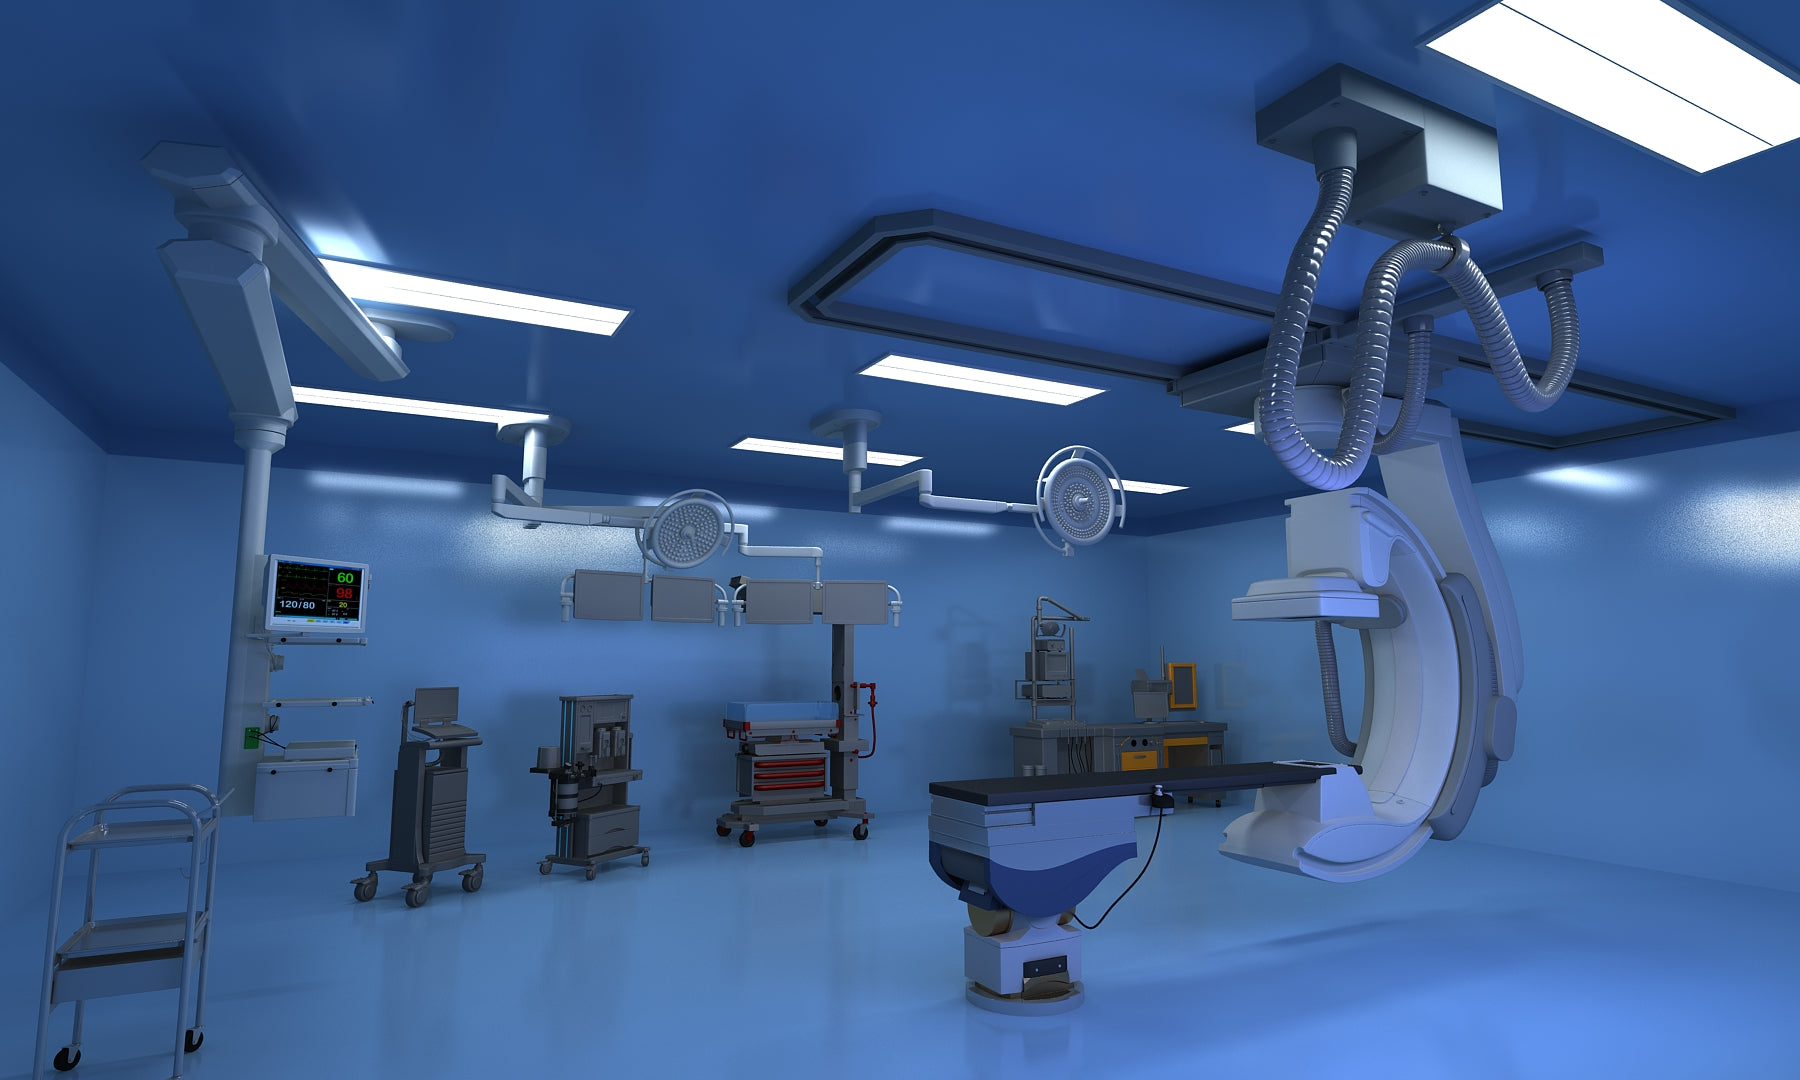 3D Models Have Changed The Healthcare Industry